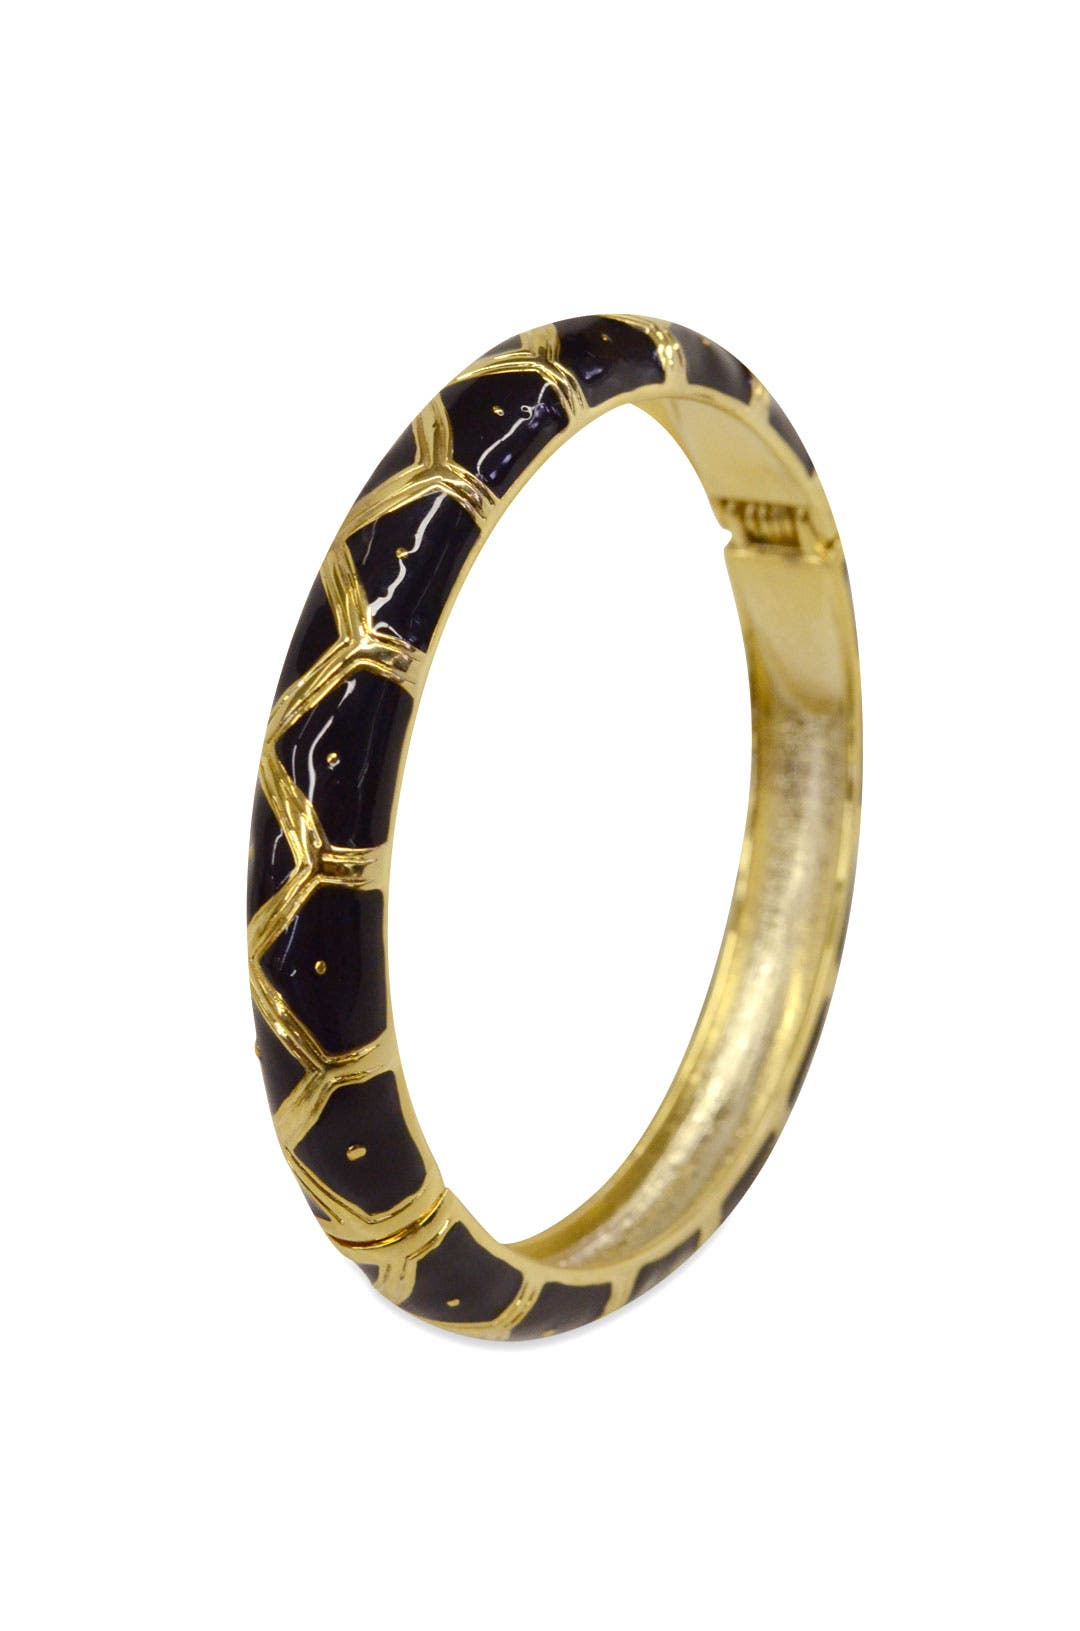 Black Zig-Zag Bangle by Cinder & Charm